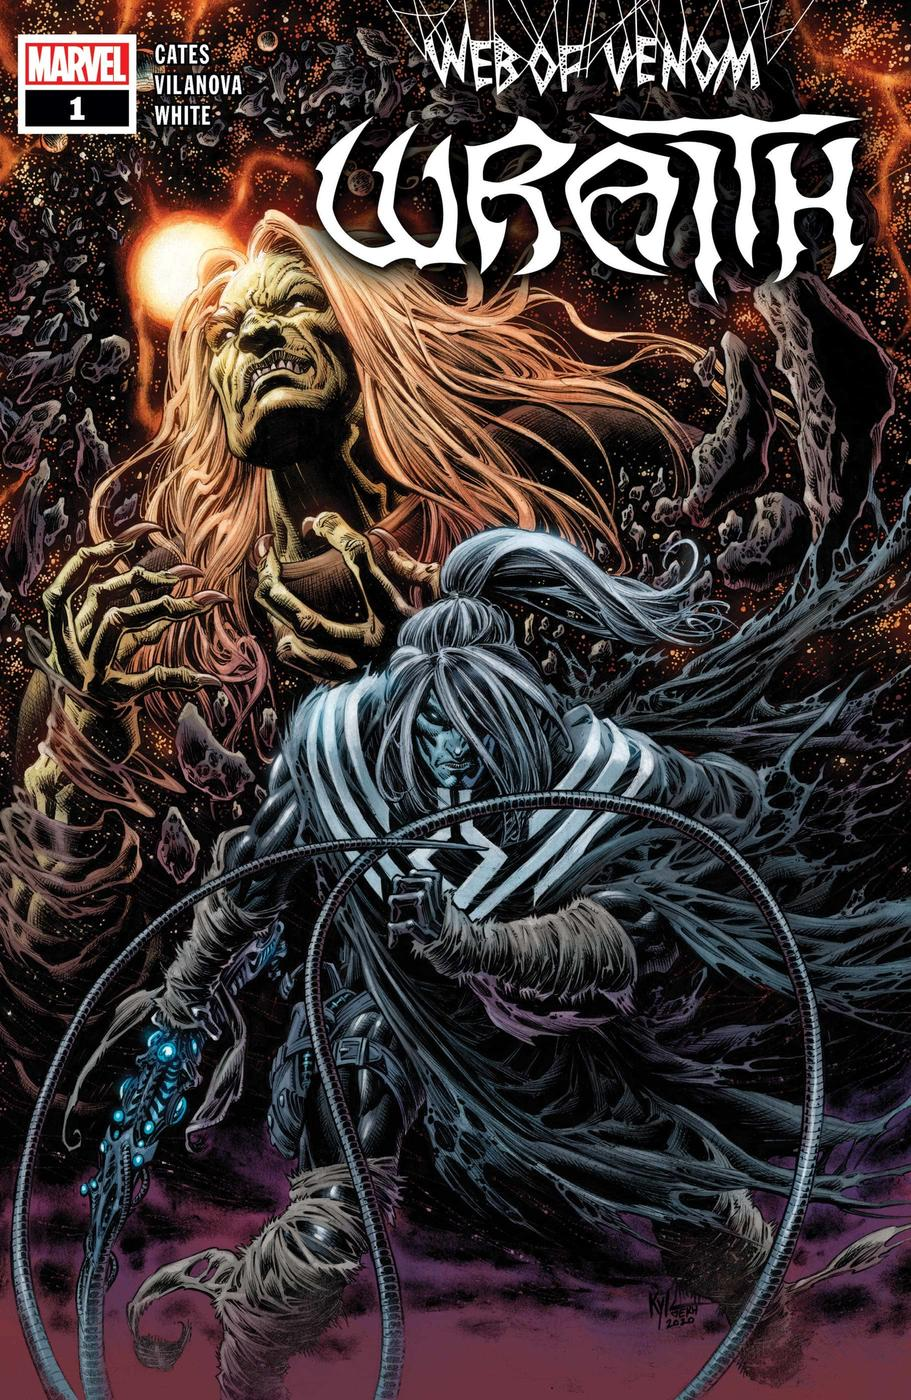 WEB OF VENOM: WRAITH #1 cover by Kyle Hotz and Dan Brown